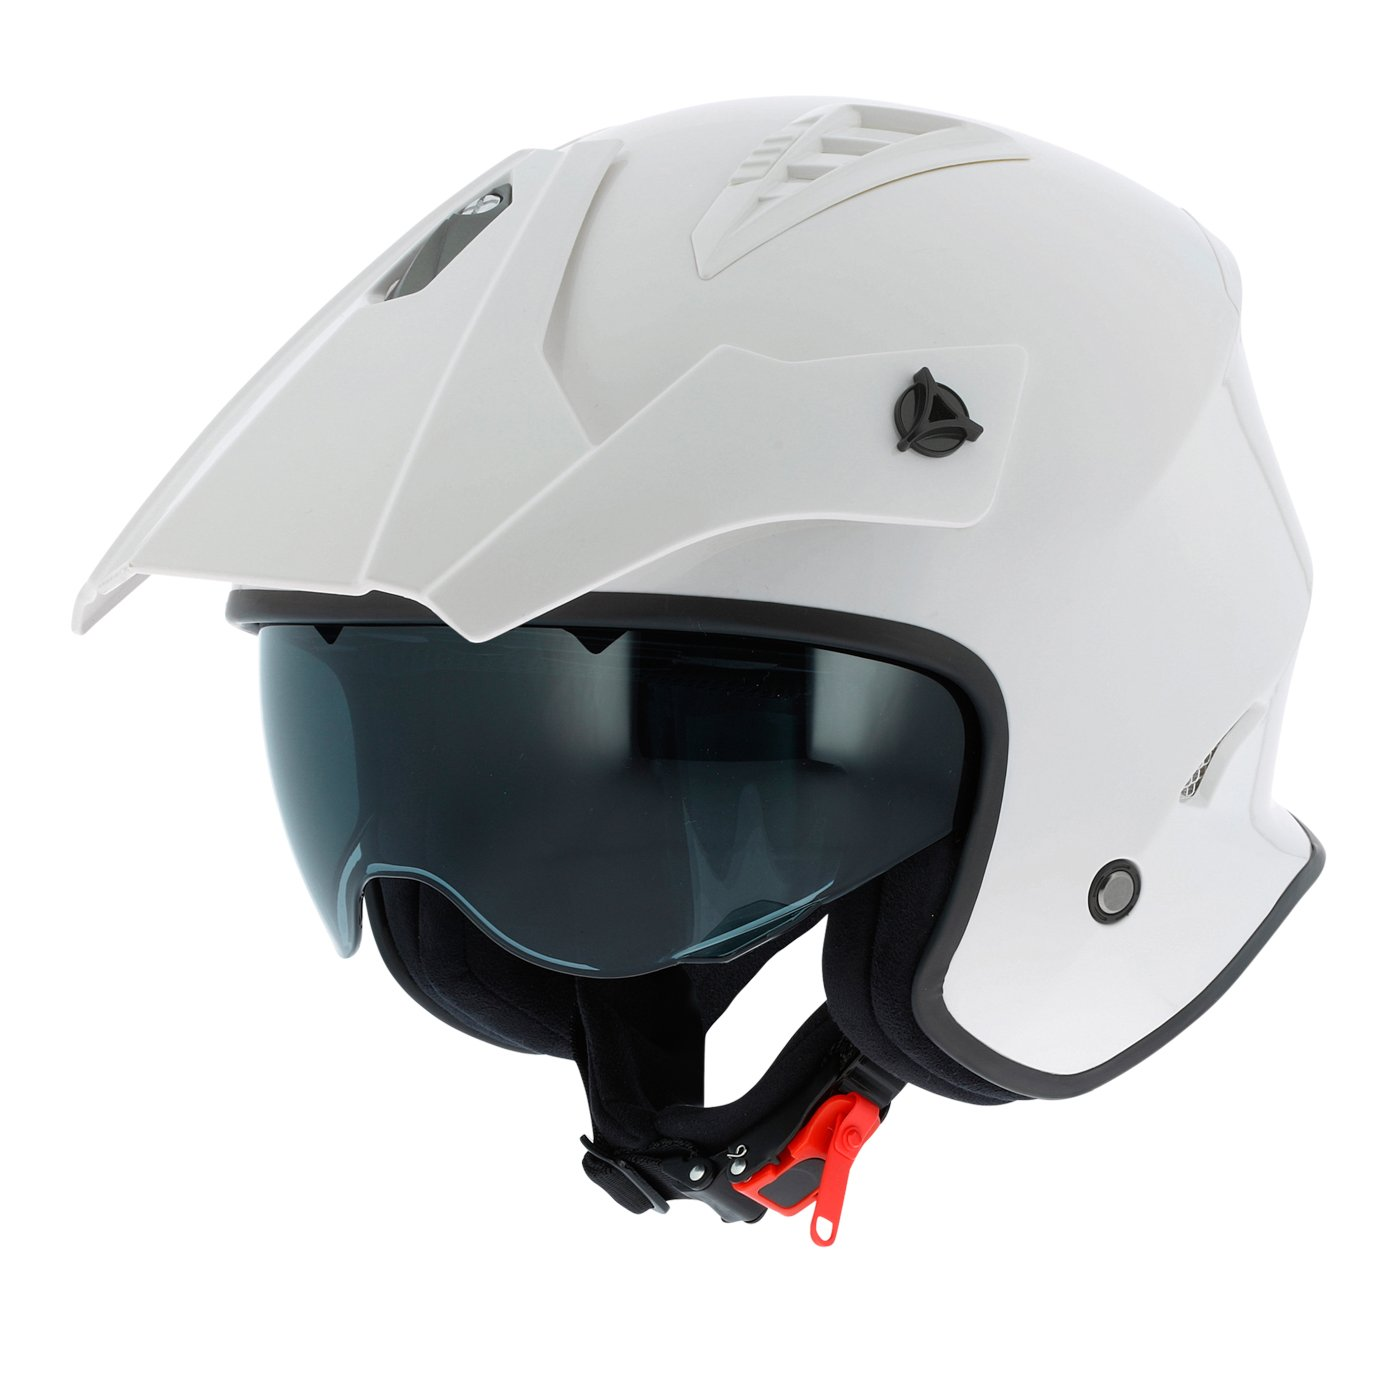 casque de ville compact Casque de moto look cross Astone Helmets Casque de moto MINI CROSS monocolor Casque jet au look enduro matt black